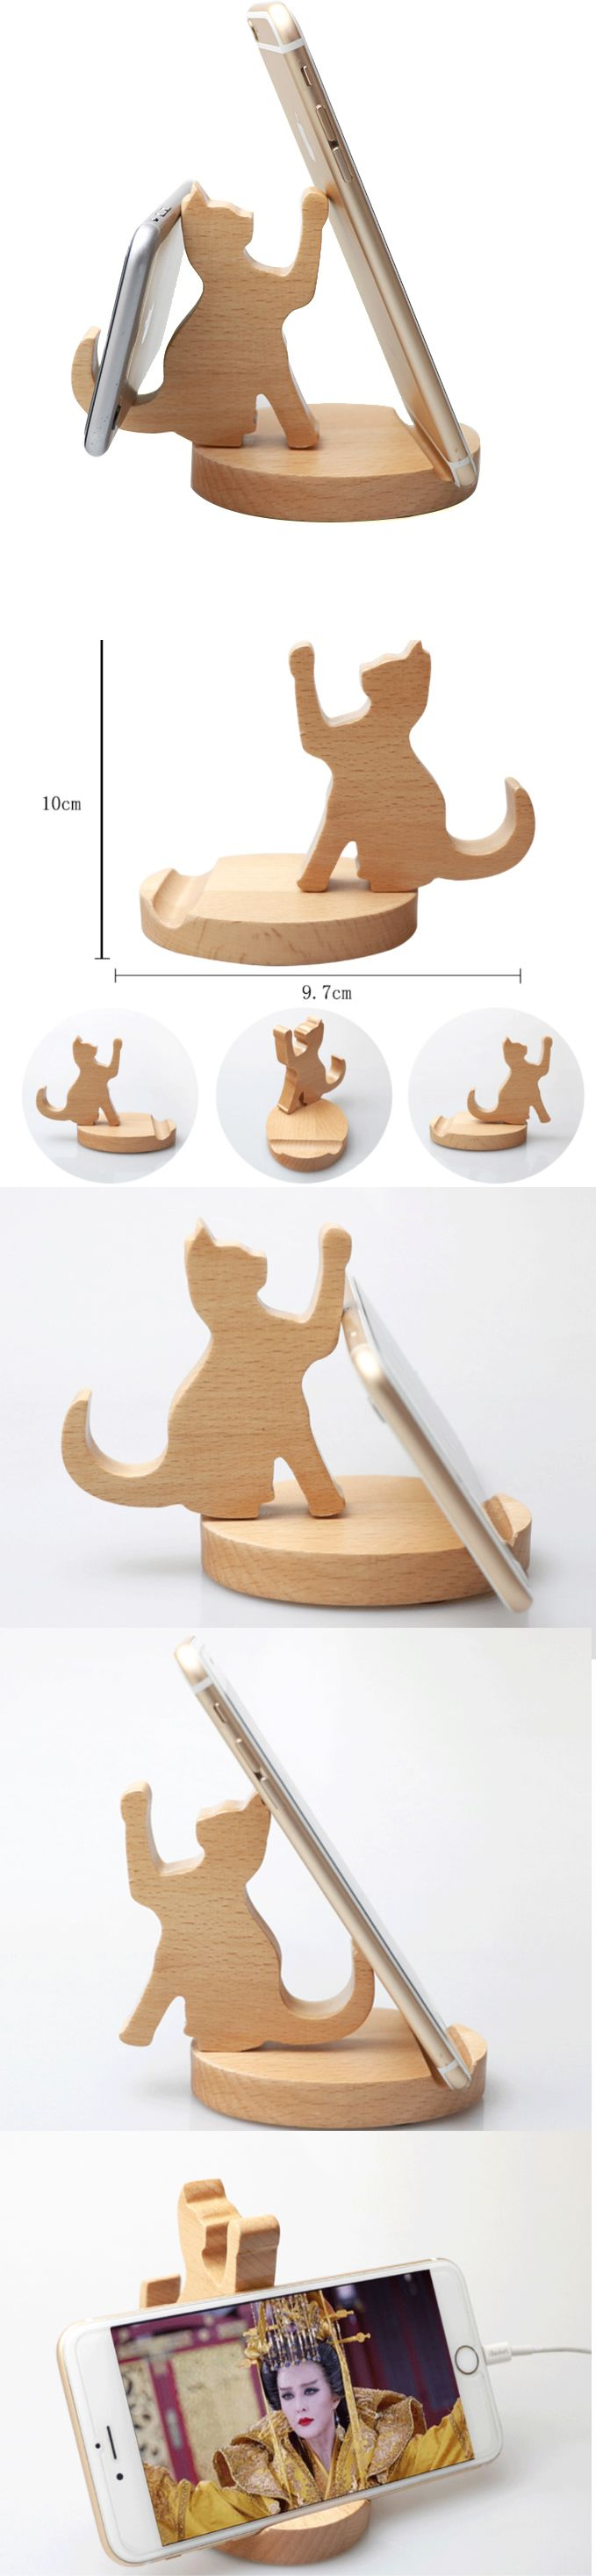 Wooden Wood Cat Shape iPhone Cell Phone Smartphone iPad Stand Mount Holder Business Card Display Stand Holder Cat desktop ornaments for iPhone 77 Plus6s6s Plus and other smartphones